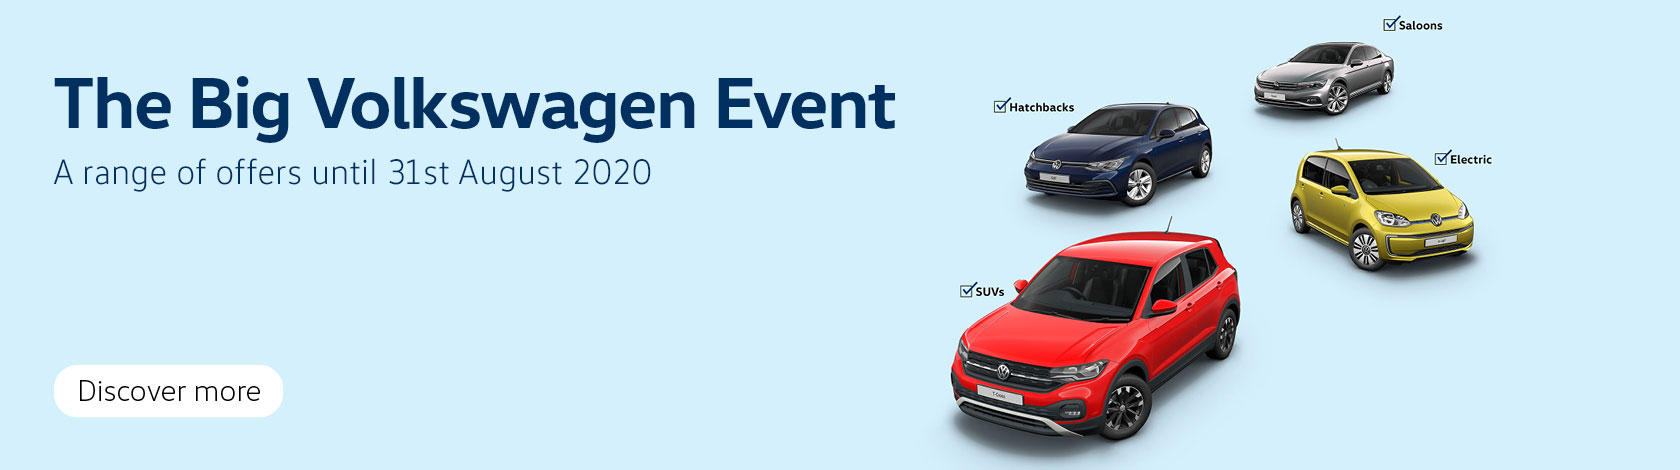 The Big Volkswagen Event